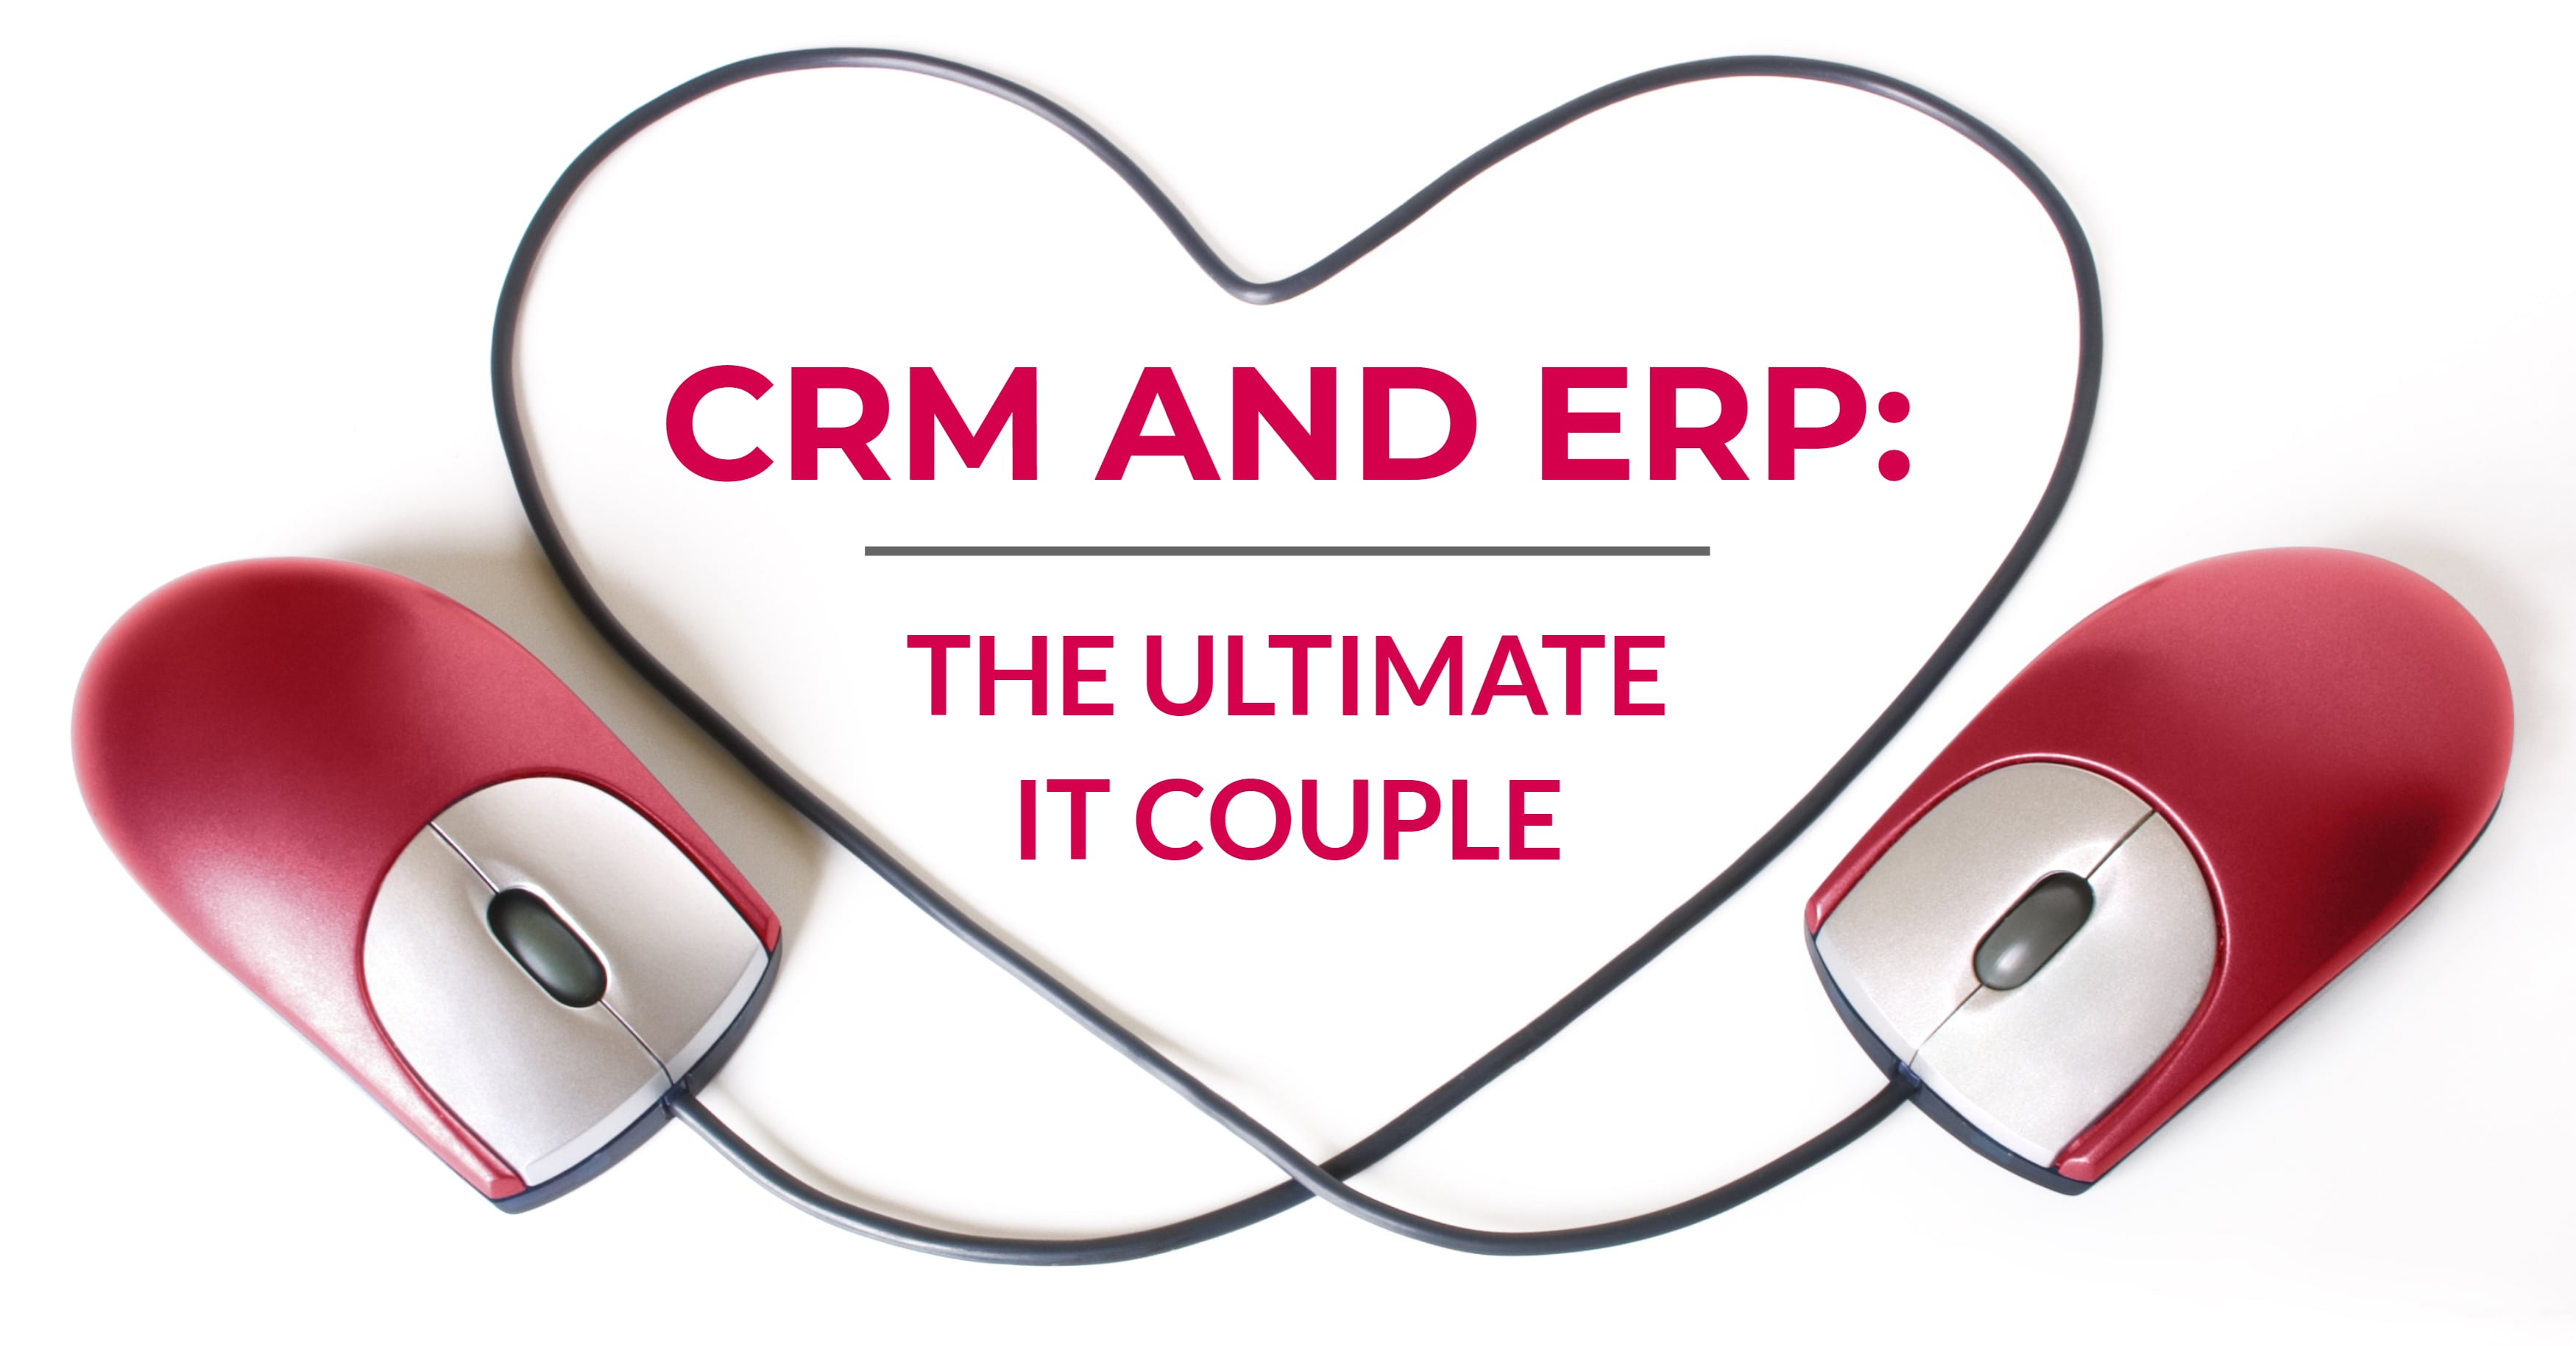 CRM and ERP: The Ultimate IT Couple